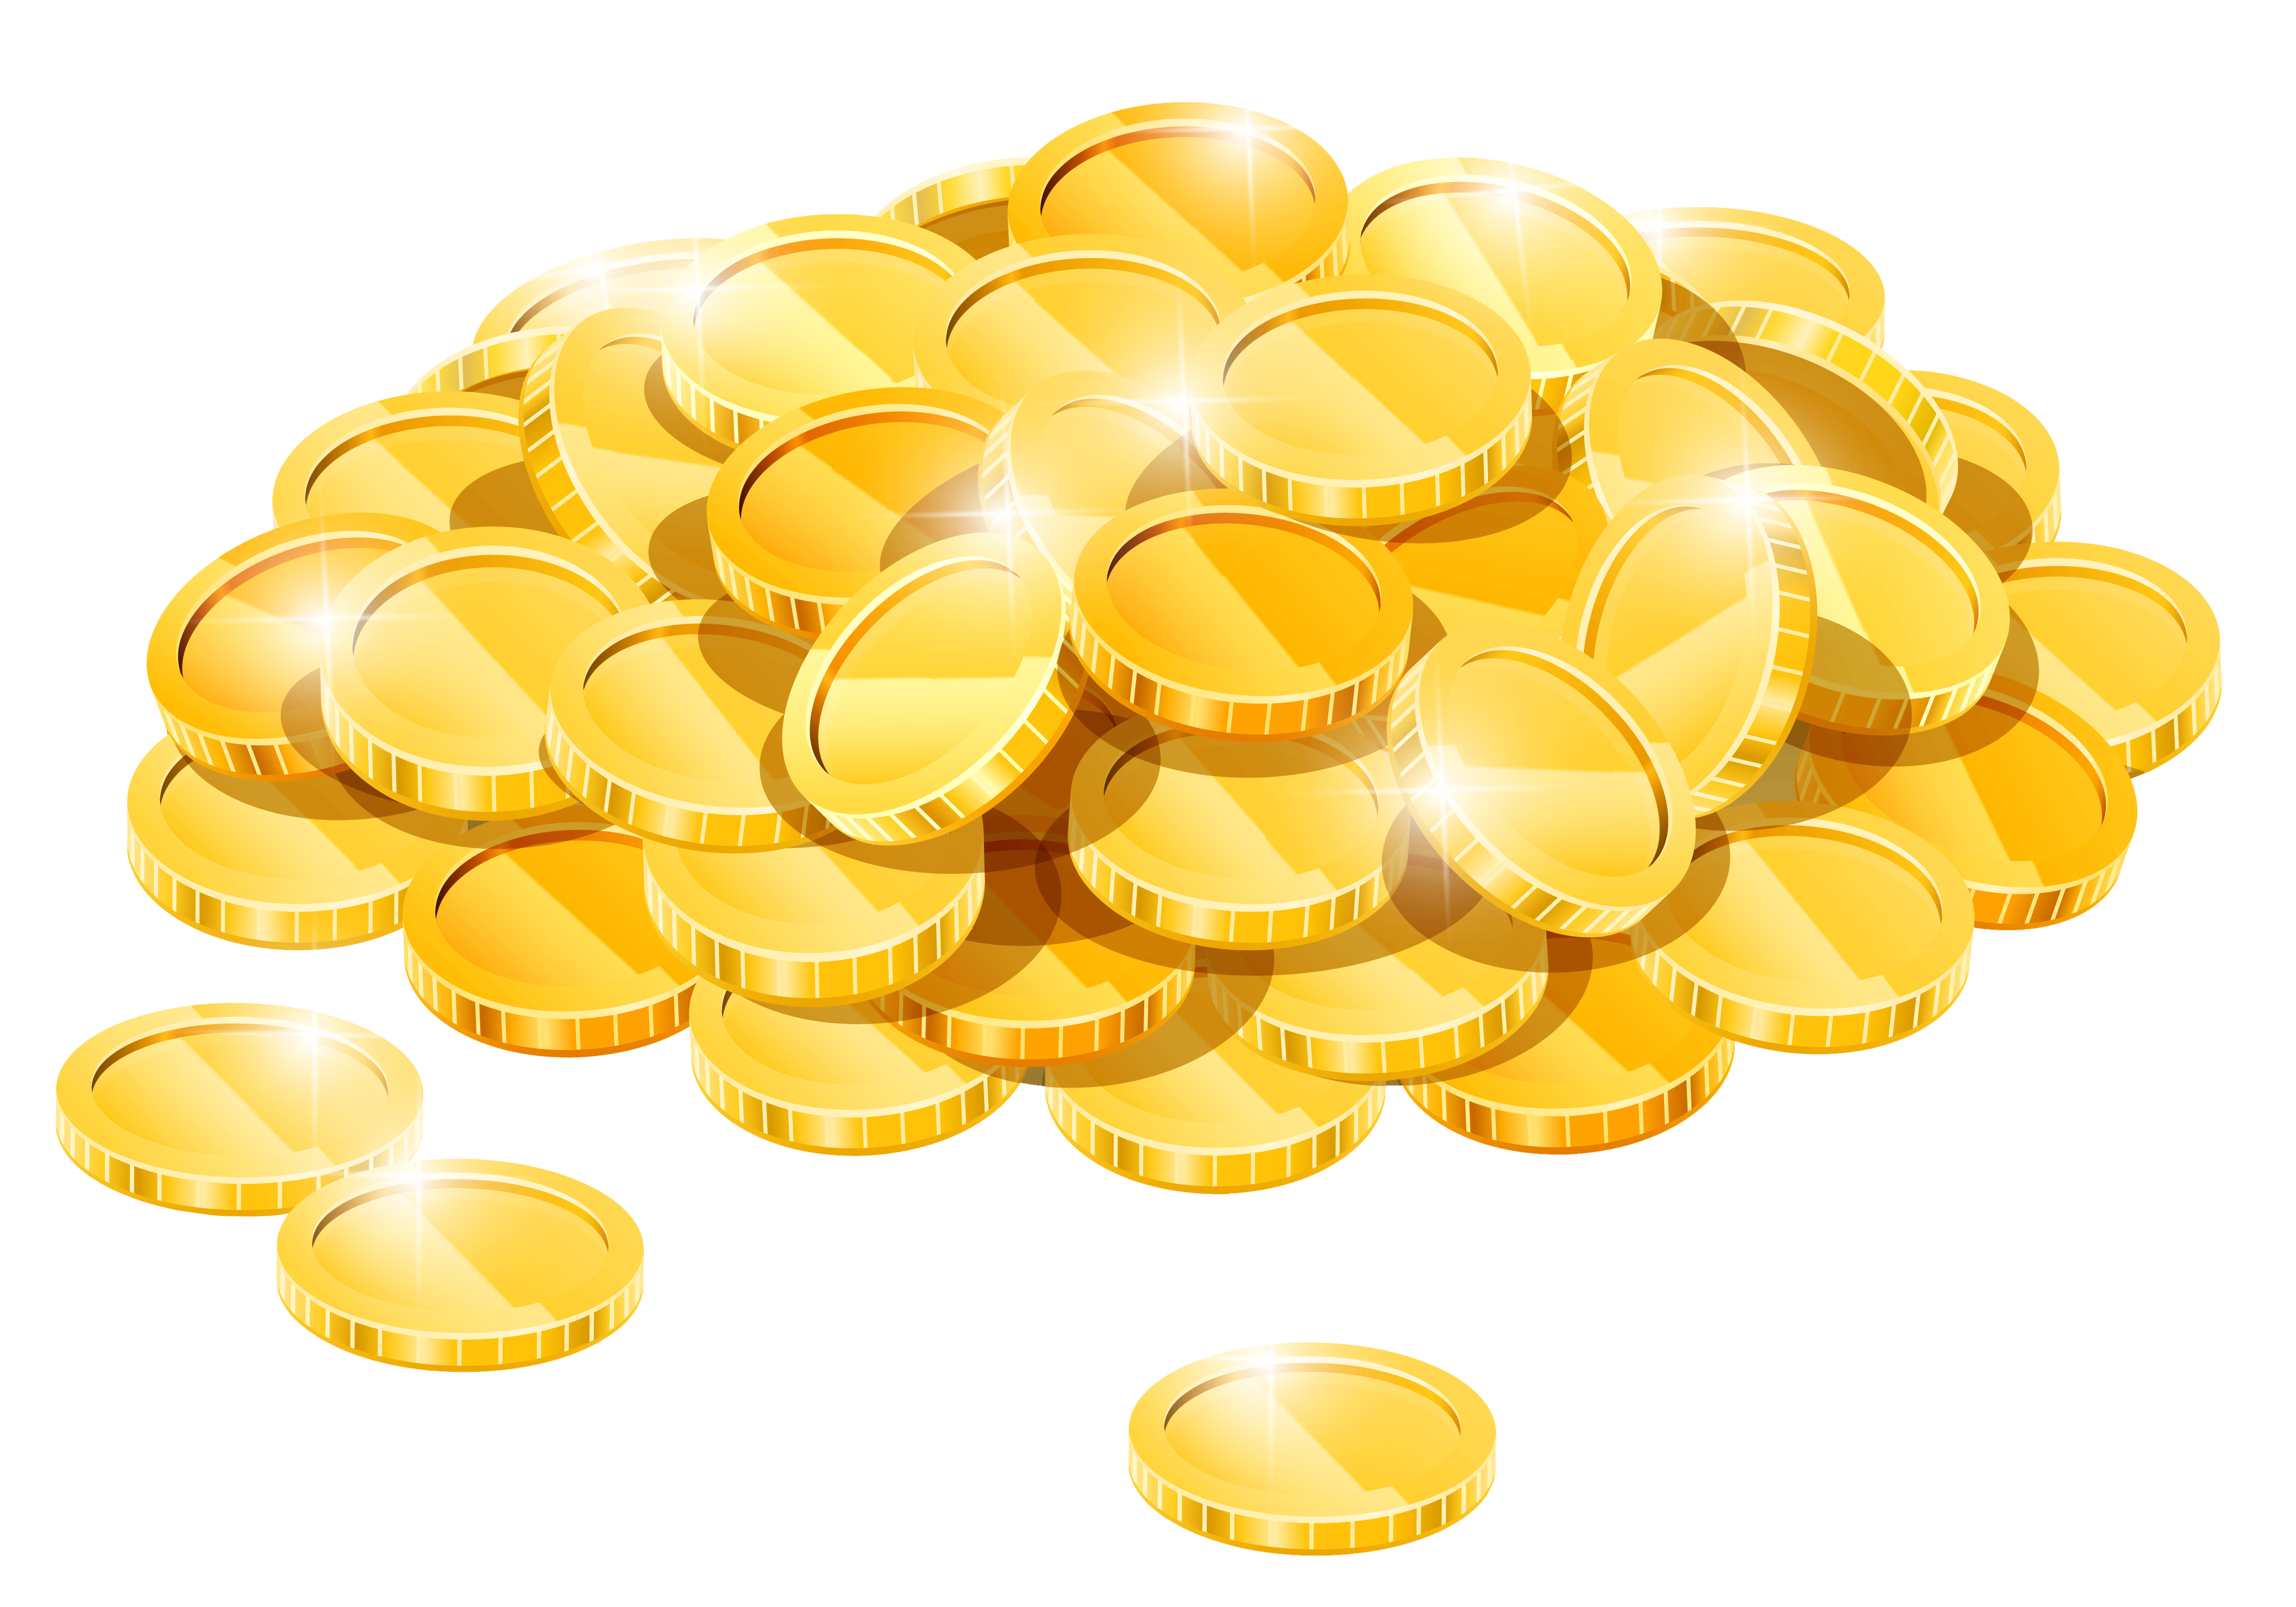 Gold Coins Clipart - Gallery